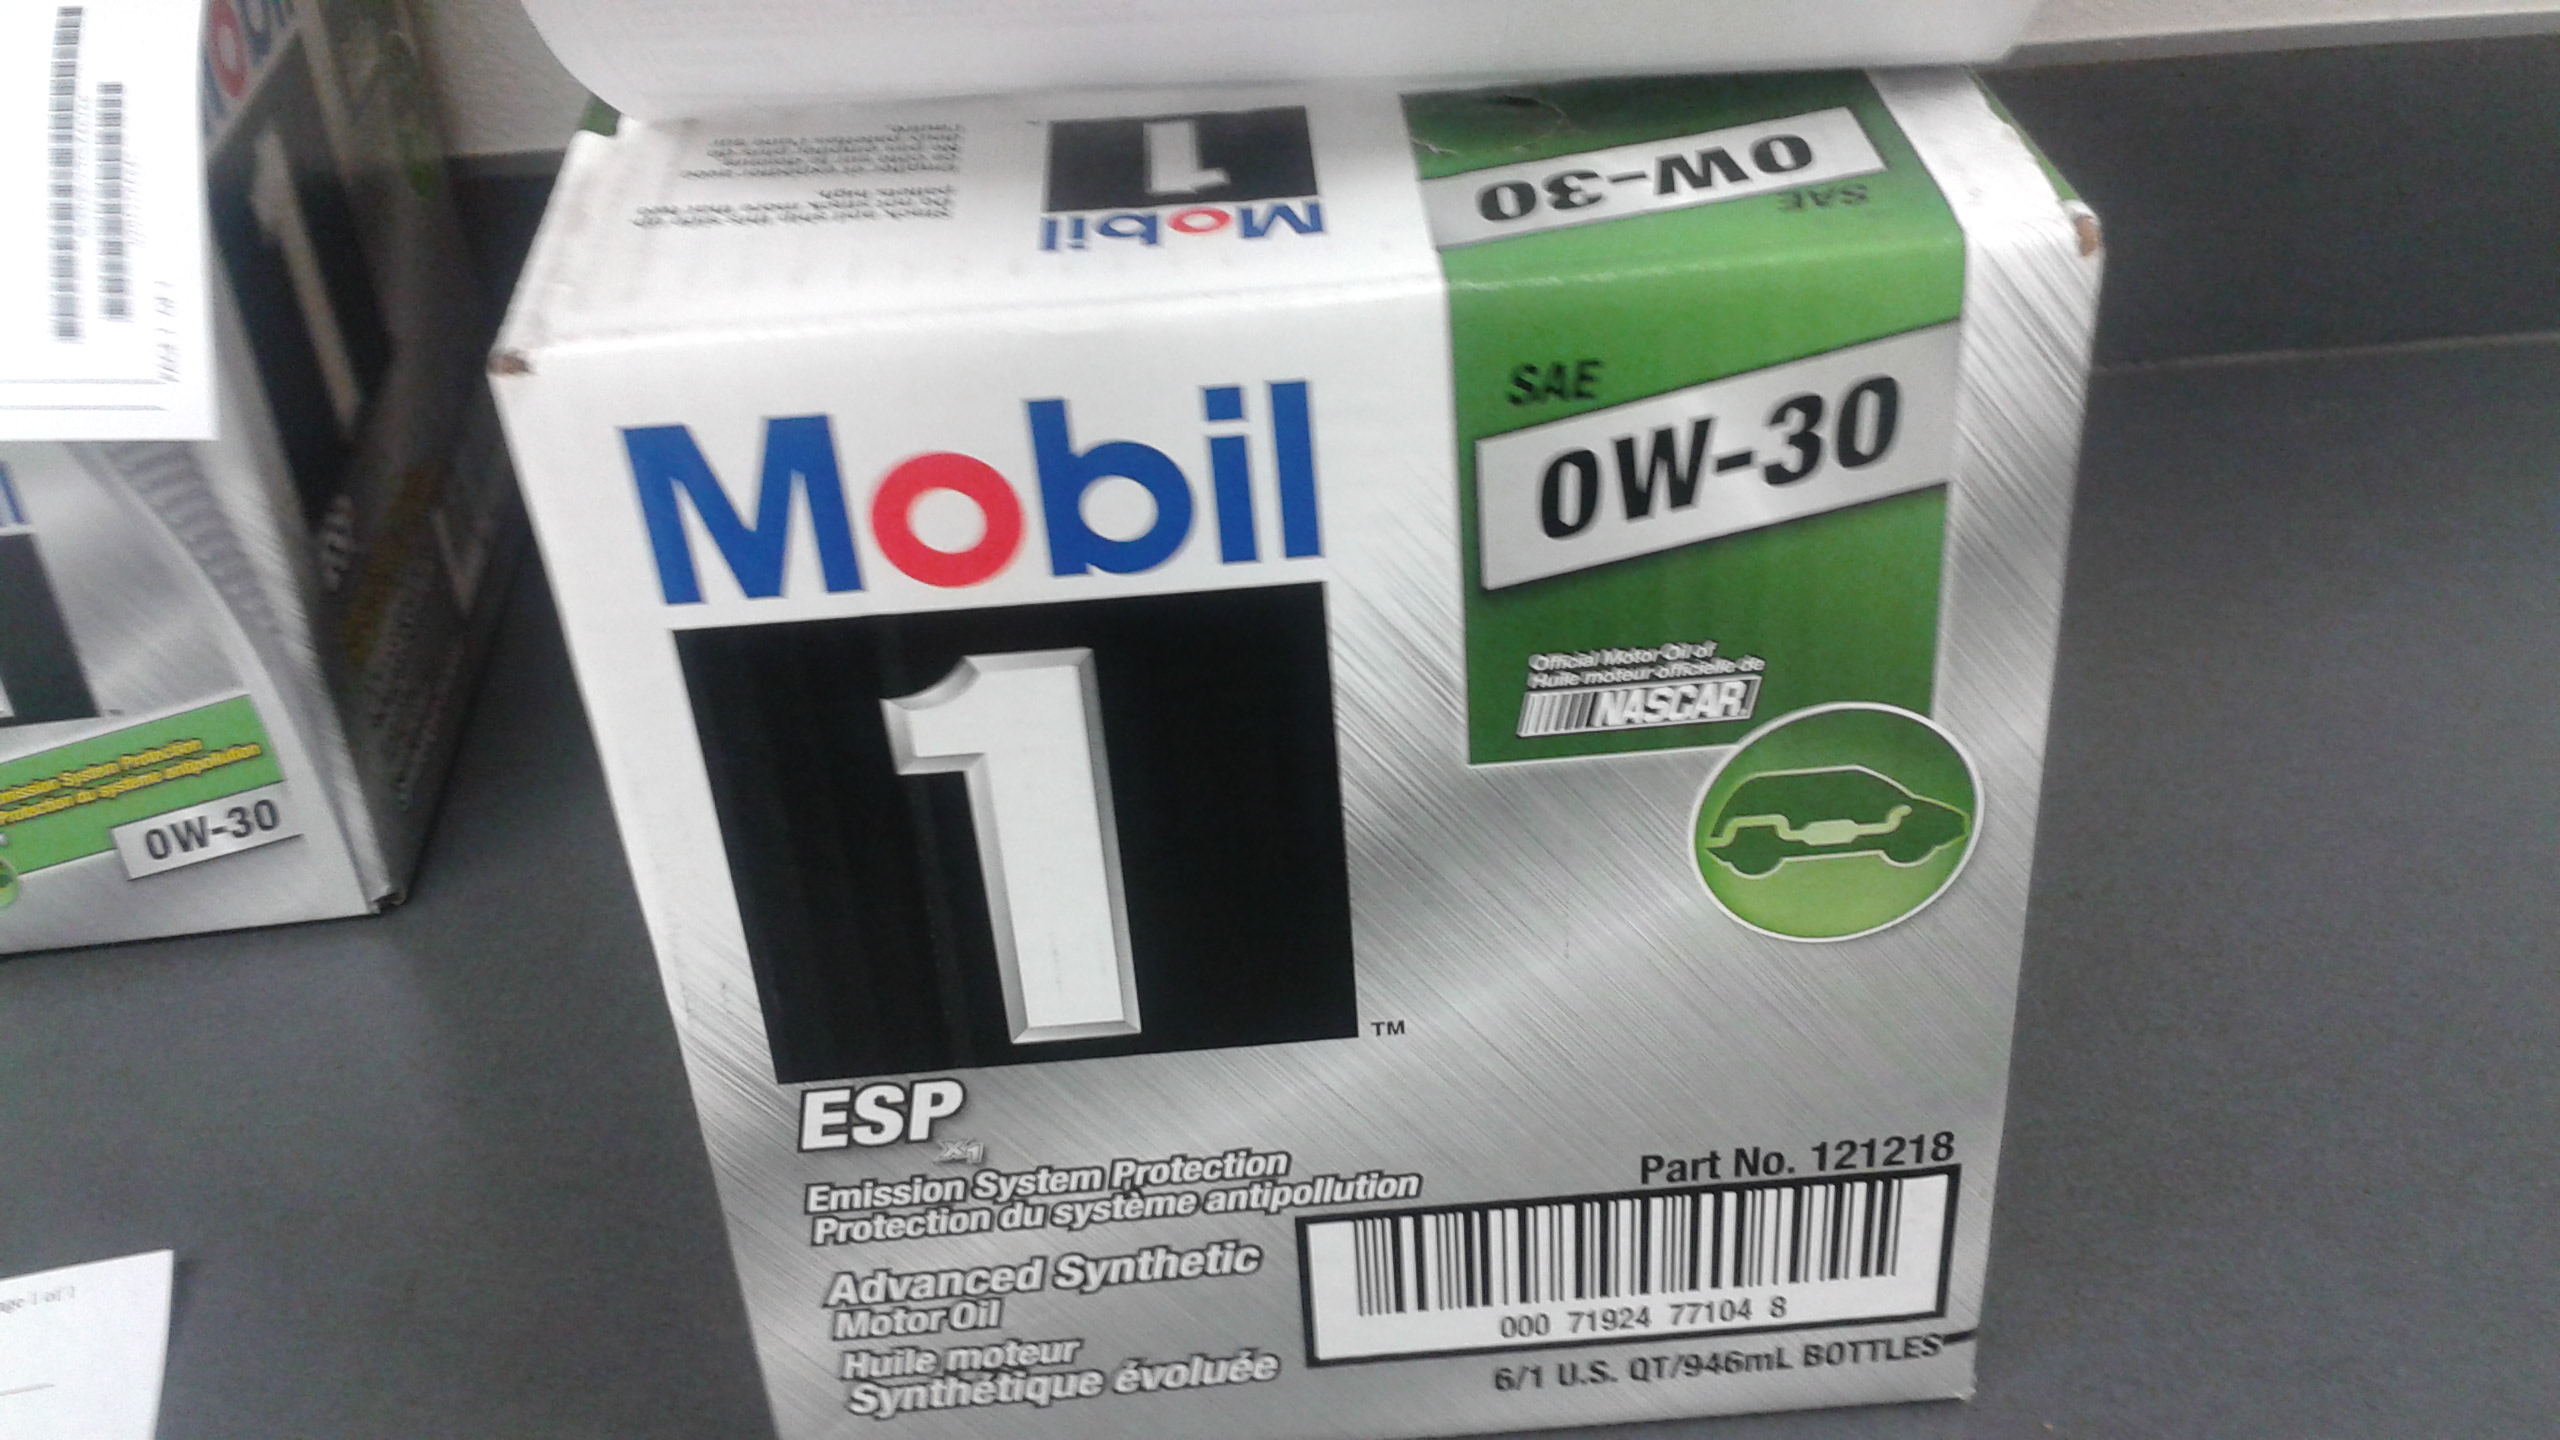 Garlyn Shelton Nissan >> This is the correct Mobil 1 motor oil in the Sprinter van – Dave the #NVguy now at Garlyn ...